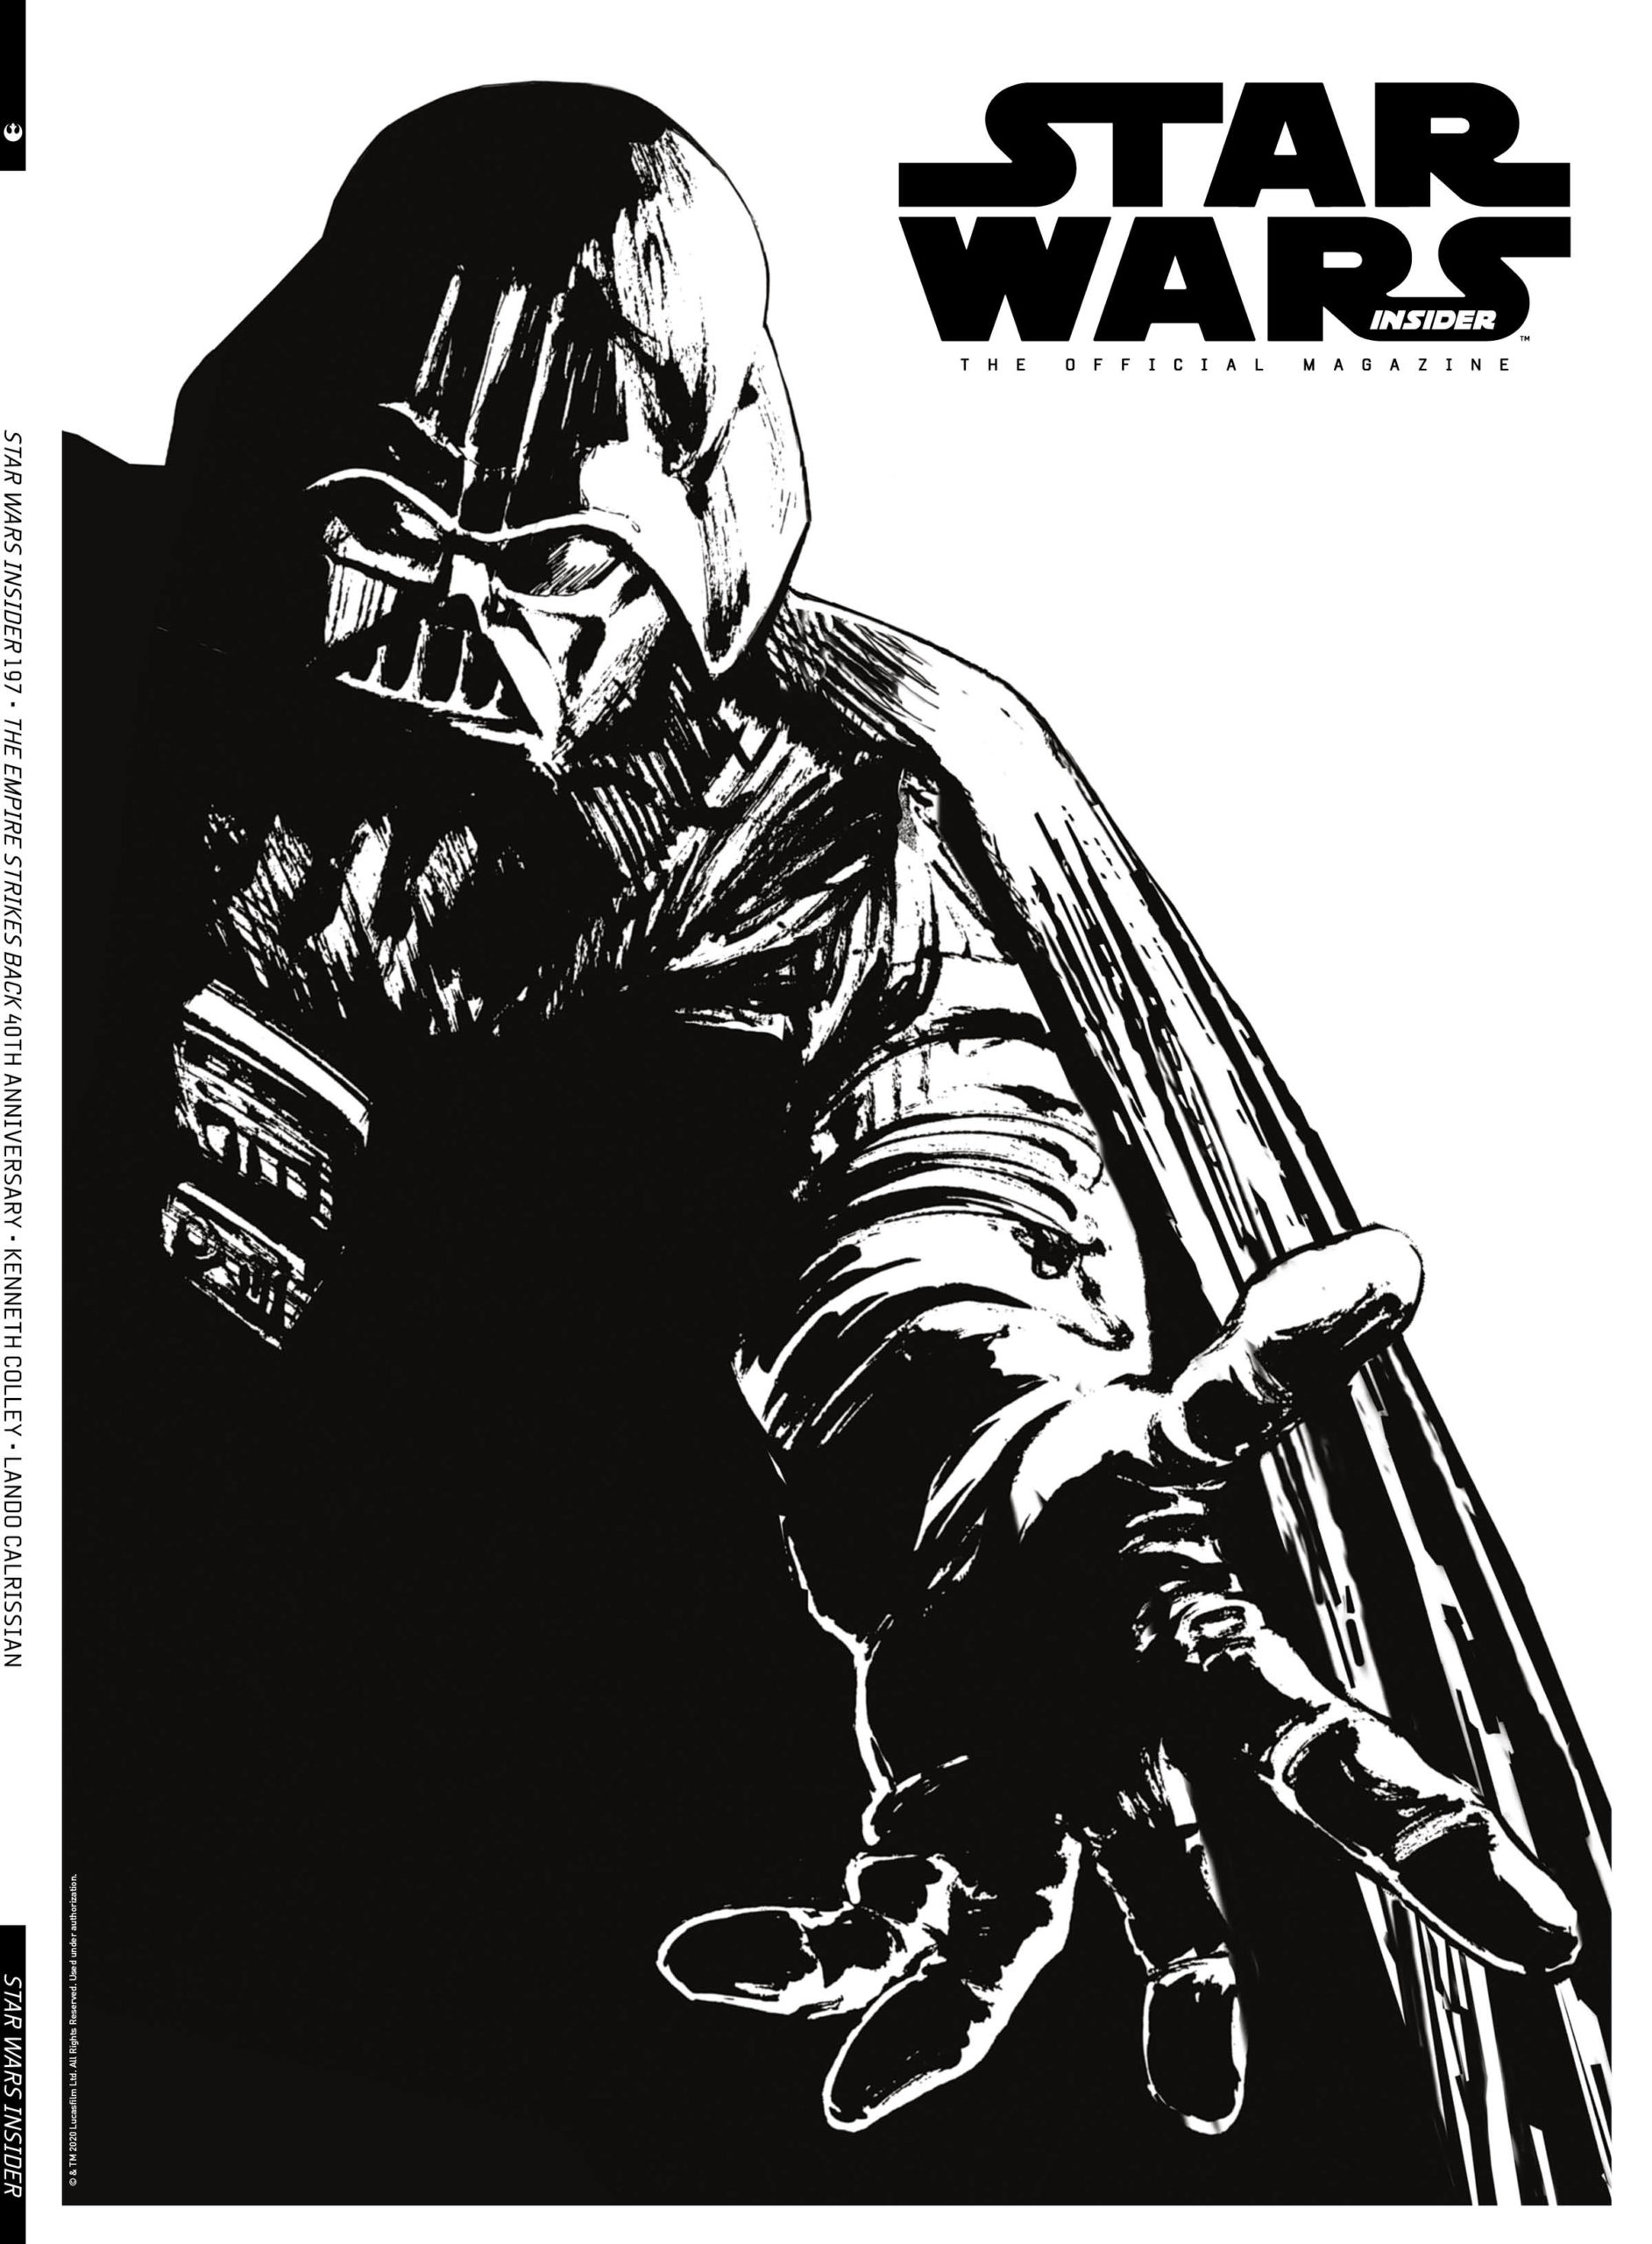 Star Wars Insider #197 (Comic Store Cover) (22.09.2020)